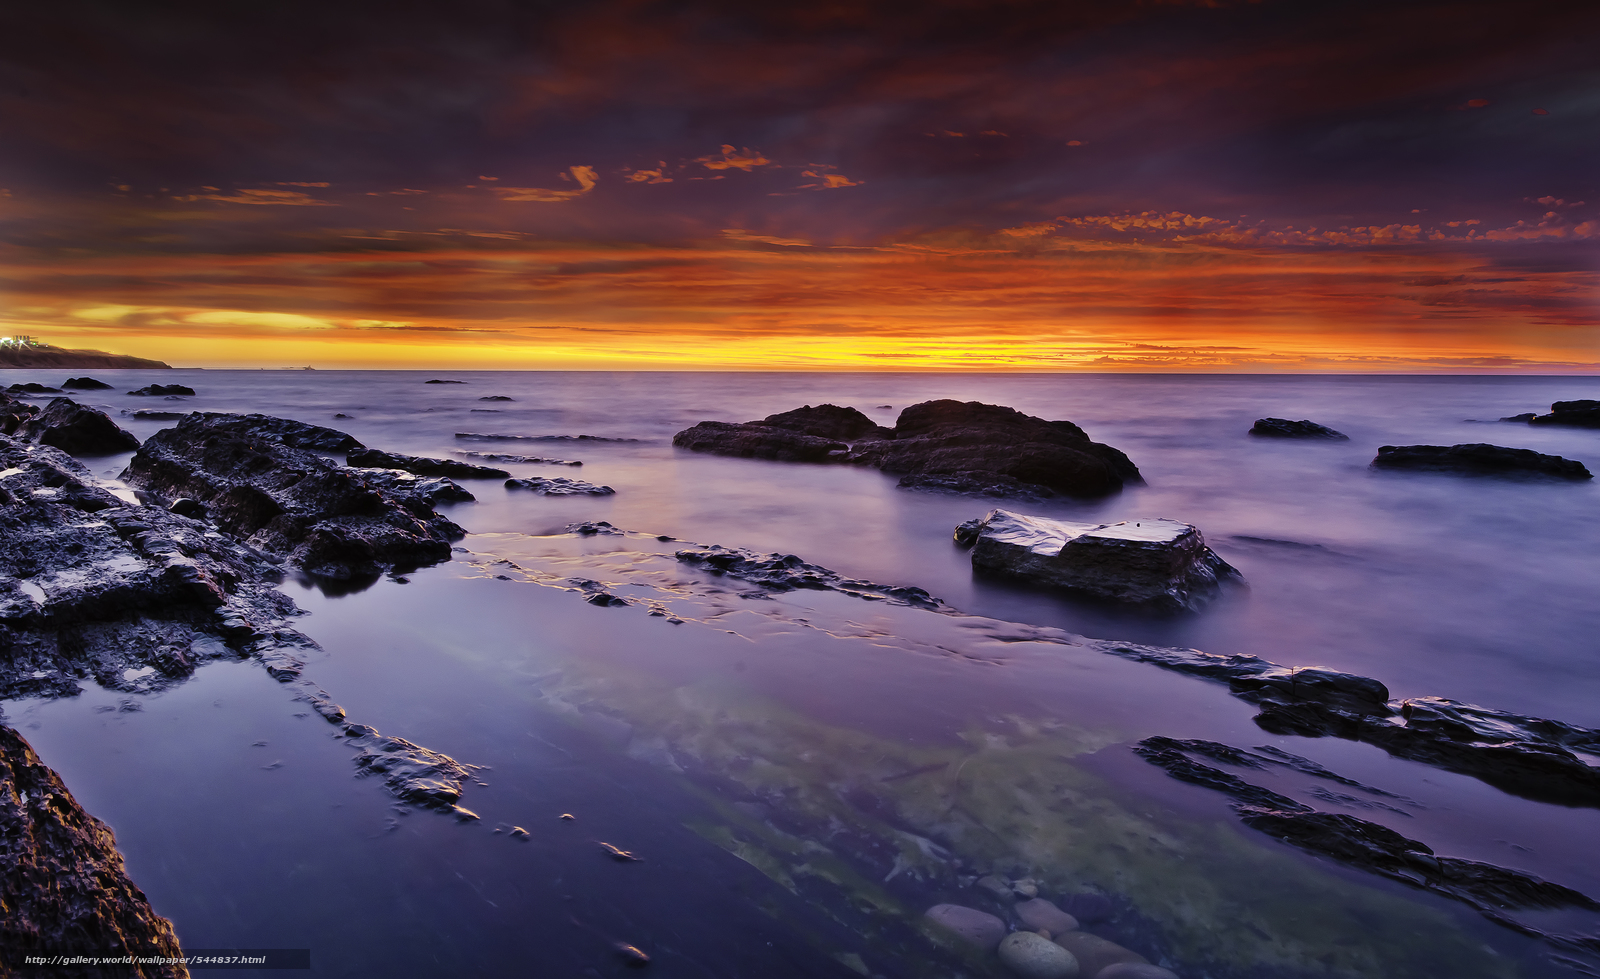 Download wallpaper south australia sunset sea landscape for South australia landscape